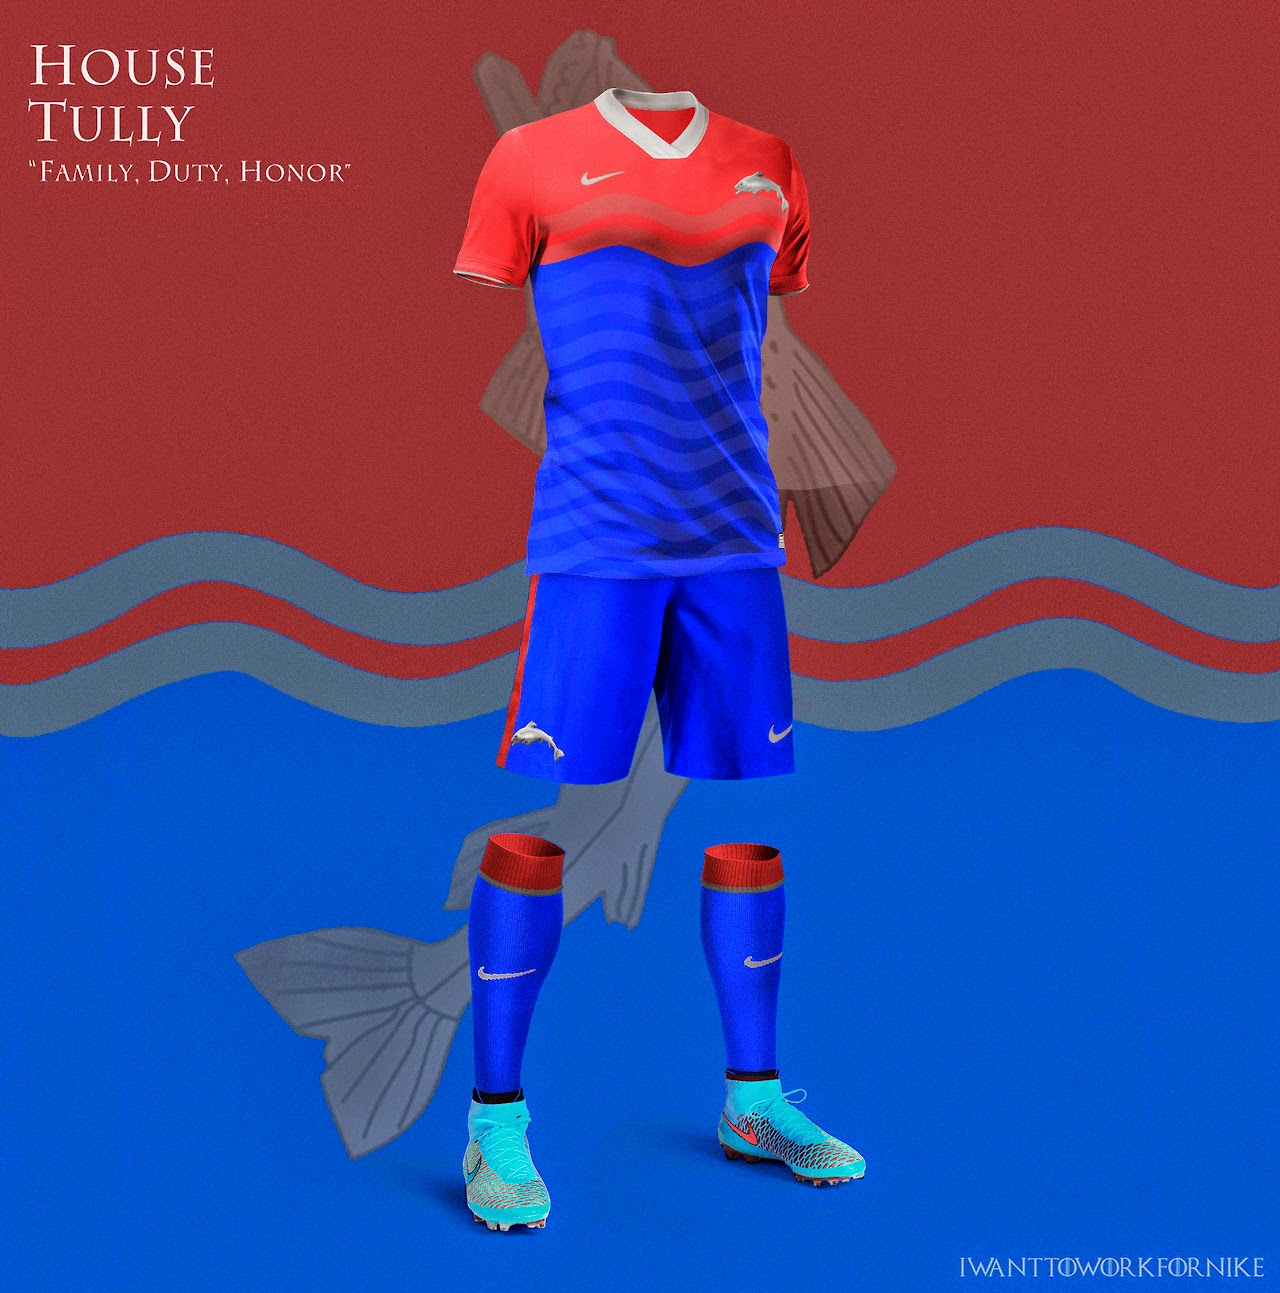 I WANT TO WORK FOR NIKE - Game Of Thrones House Themed World Cup Kits  aaba2c6a8